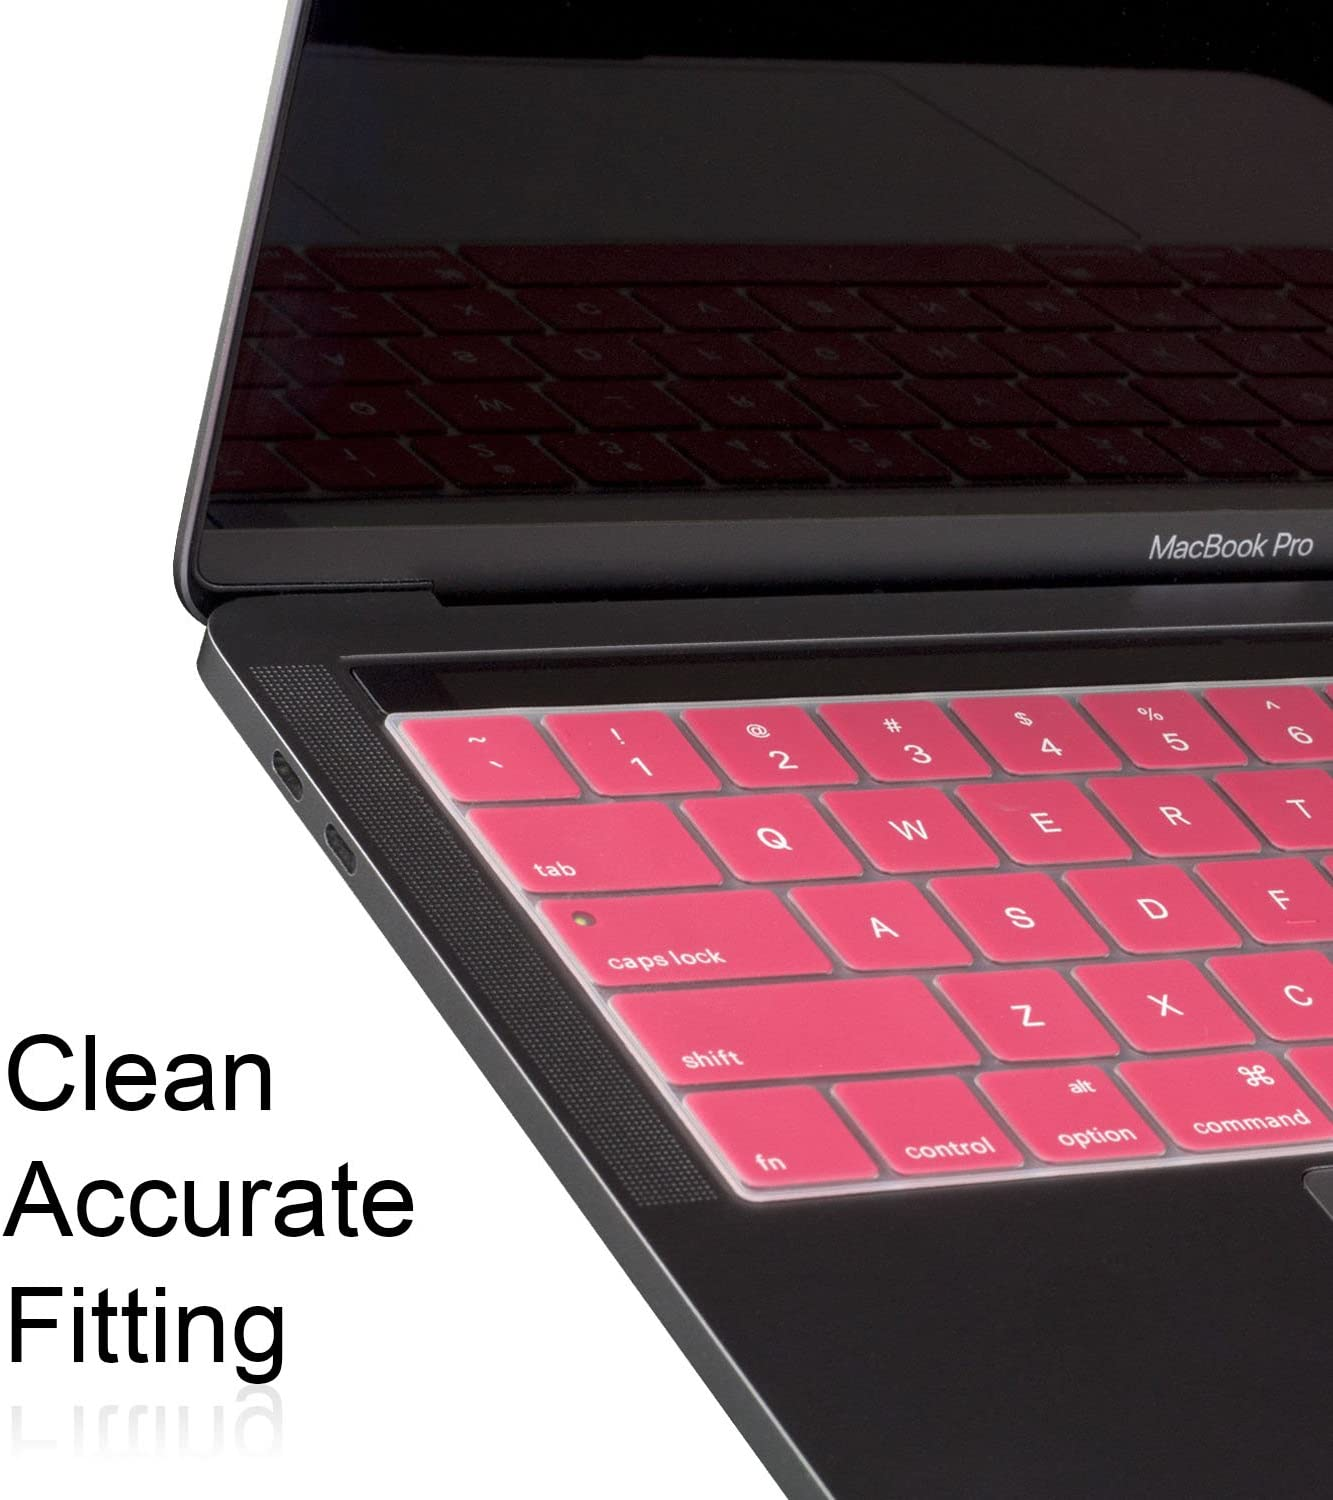 A1706 A1708 2 Pack//Hot Pink//New Ultra Thin Silicone Keyboard Cover Skin for 2016 MacBook Pro 13 GolemGuard A1707 MacBookPro 15